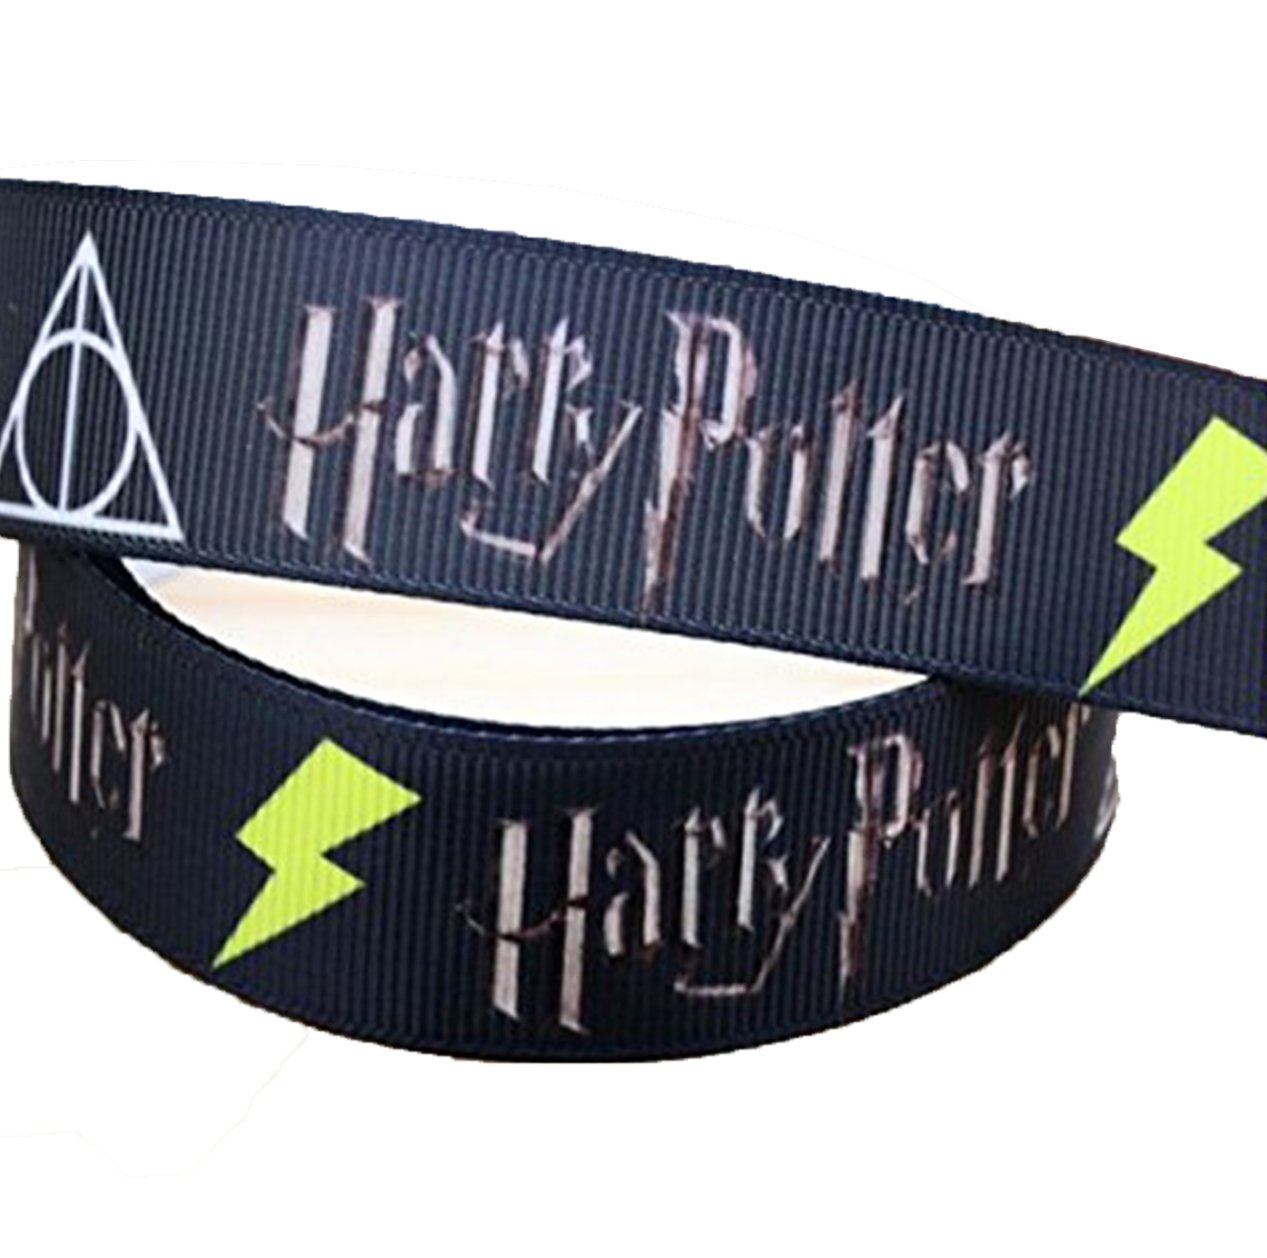 2m x 22mm HARRY POTTER GROSGRAIN RIBBON FOR BIRTHDAY CAKE'S, WEDDING CAKES, GIFT WRAP WRAPPING MOTHERS DAY Added Sparkle